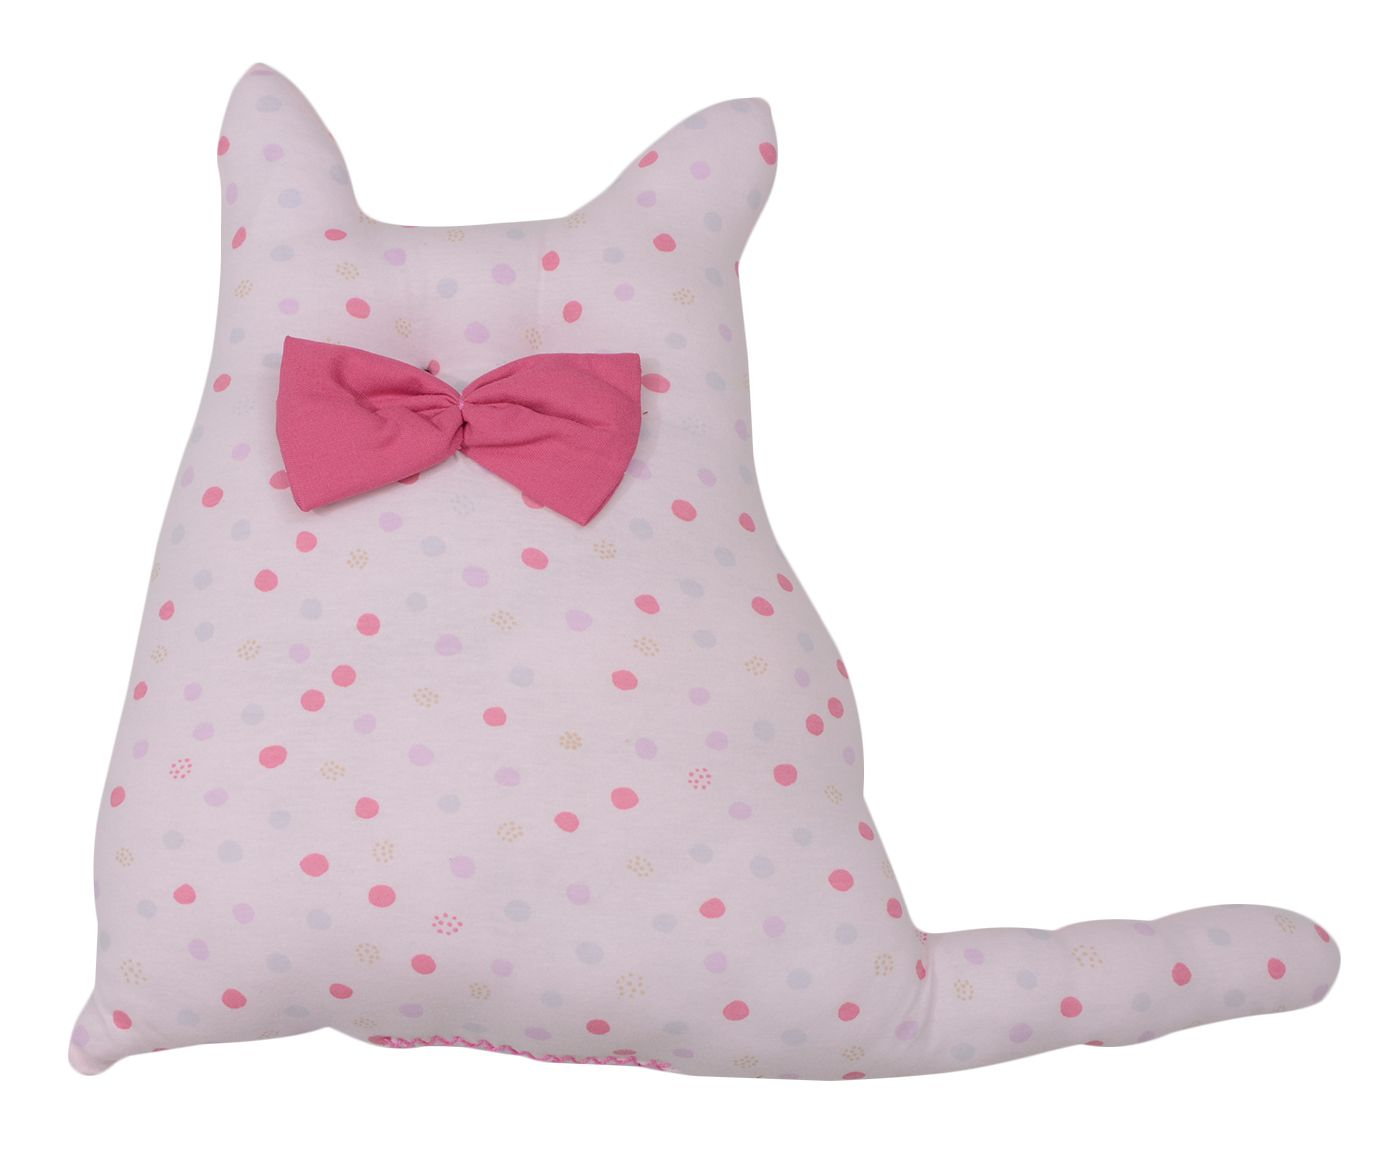 Almofada Cat Points Rosa - 50x40cm   Westwing.com.br